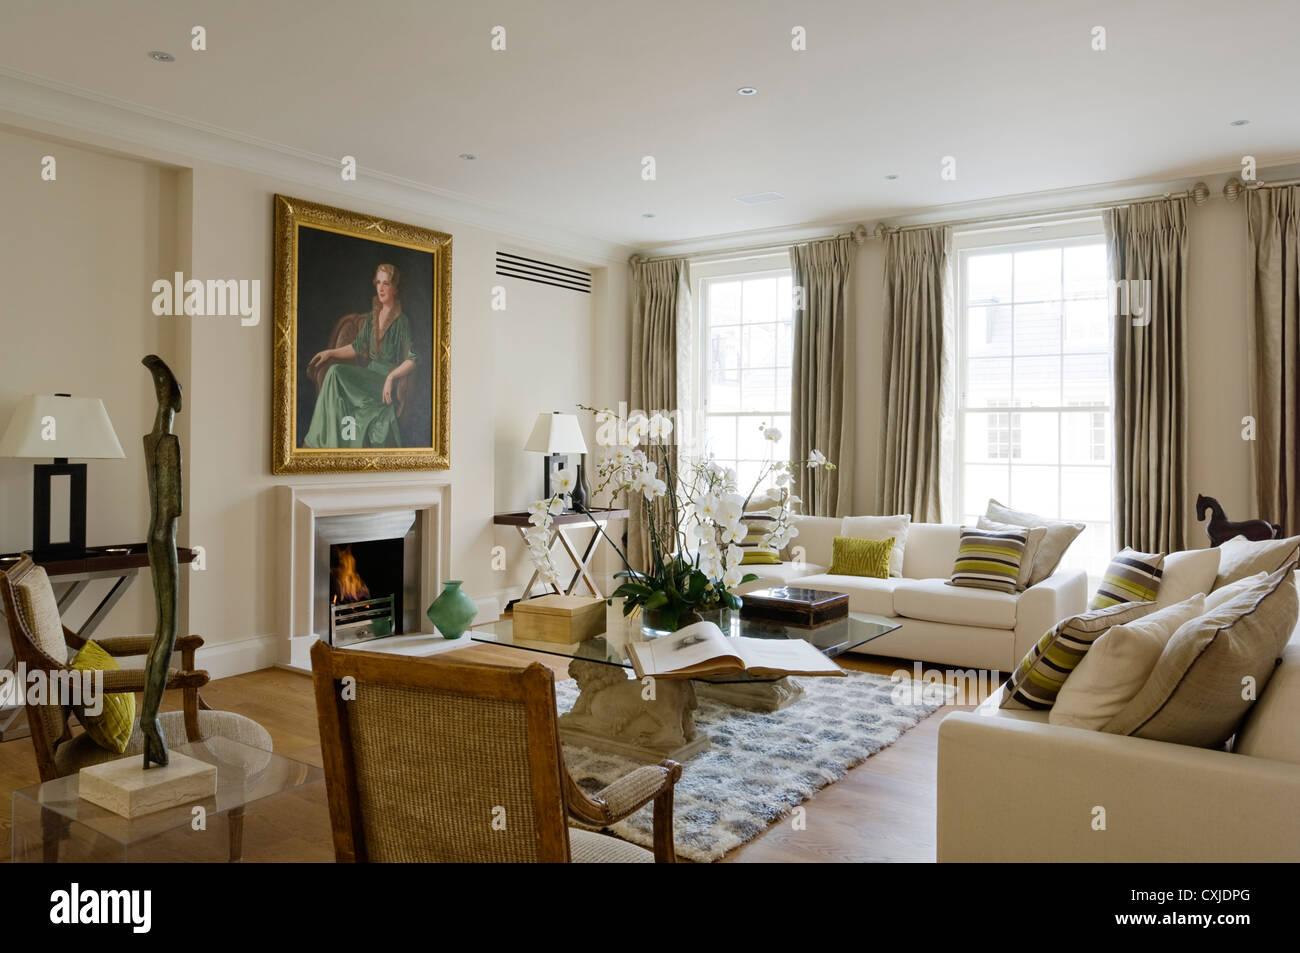 Colour day interior living room seating fireplace furniture window artwork sash window sofa white neutral curtains window